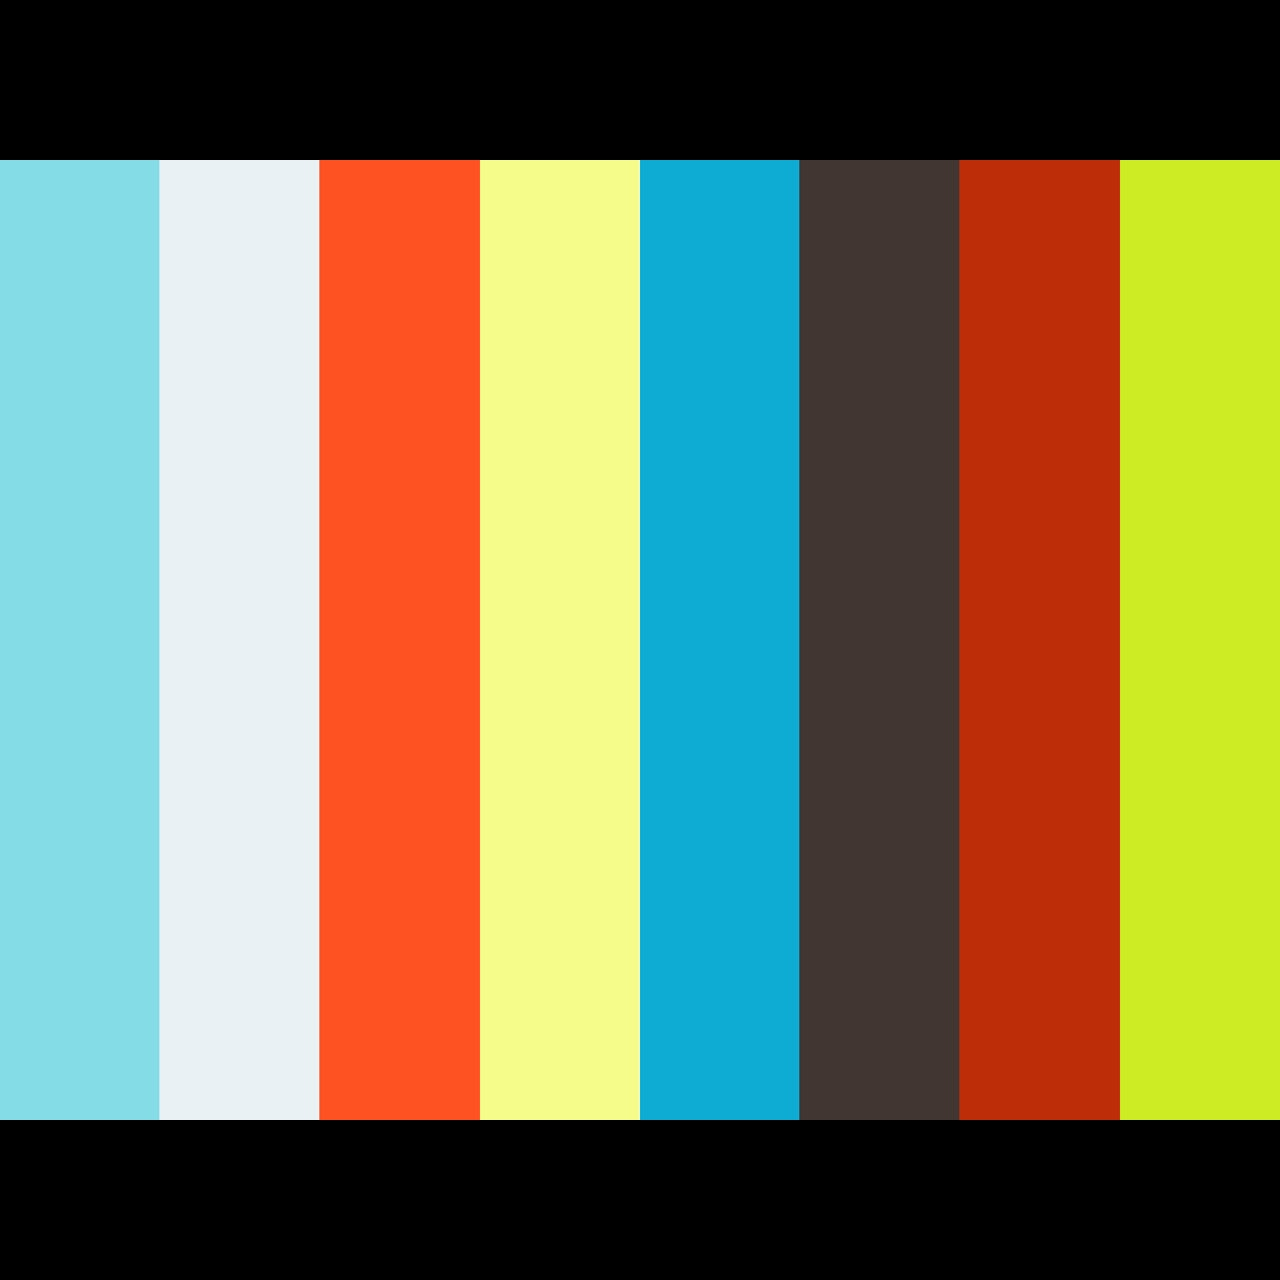 The Royal Bank of Scotland | #LoudestAndProudest: Lift